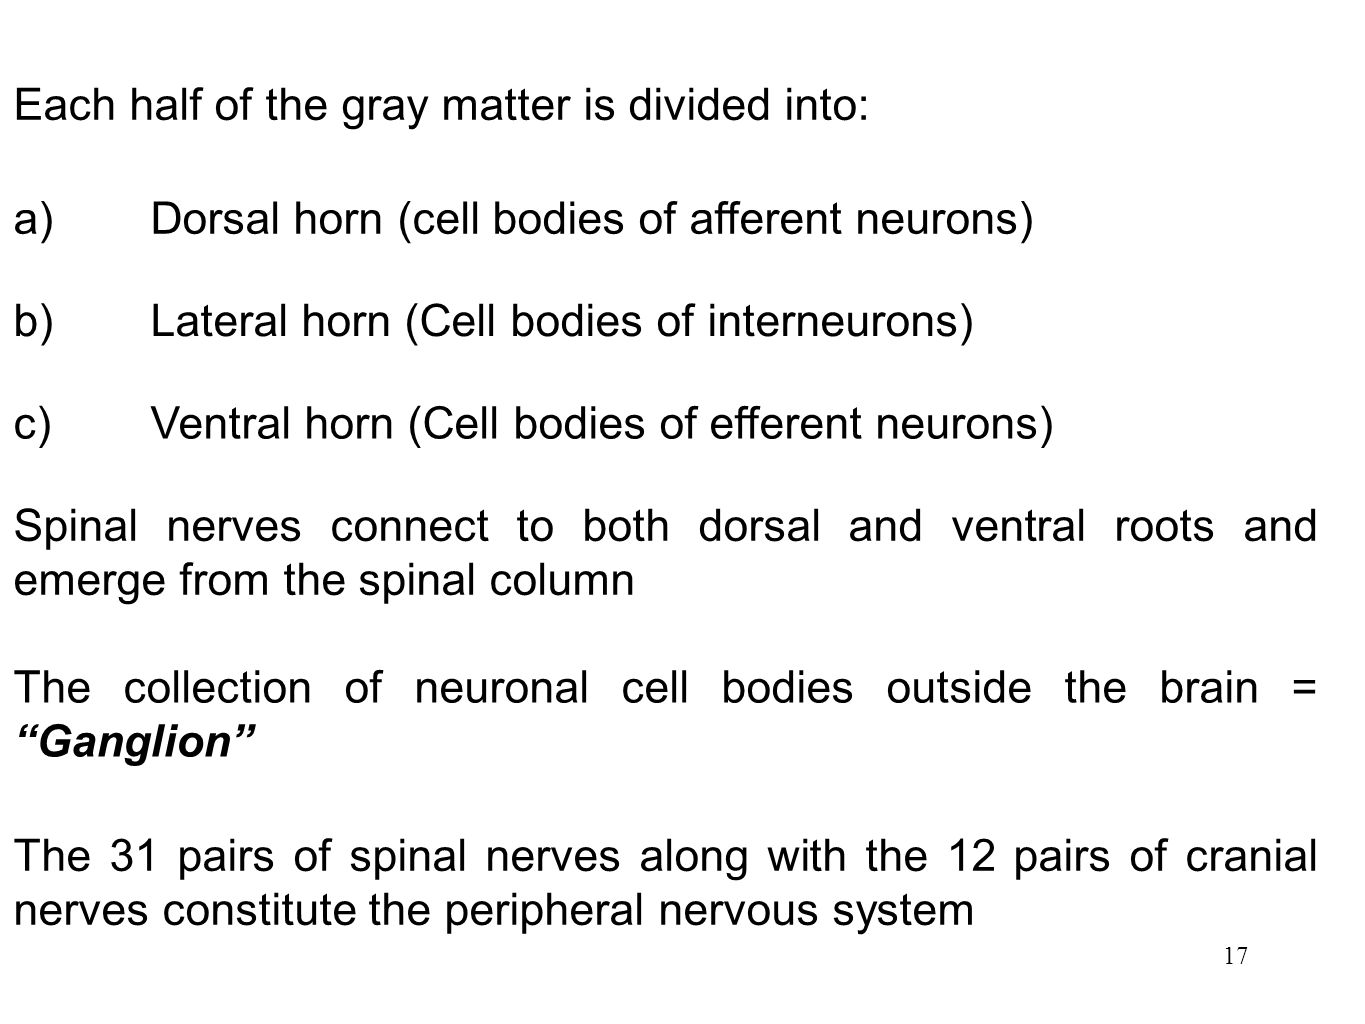 Each half of the gray matter is divided into: